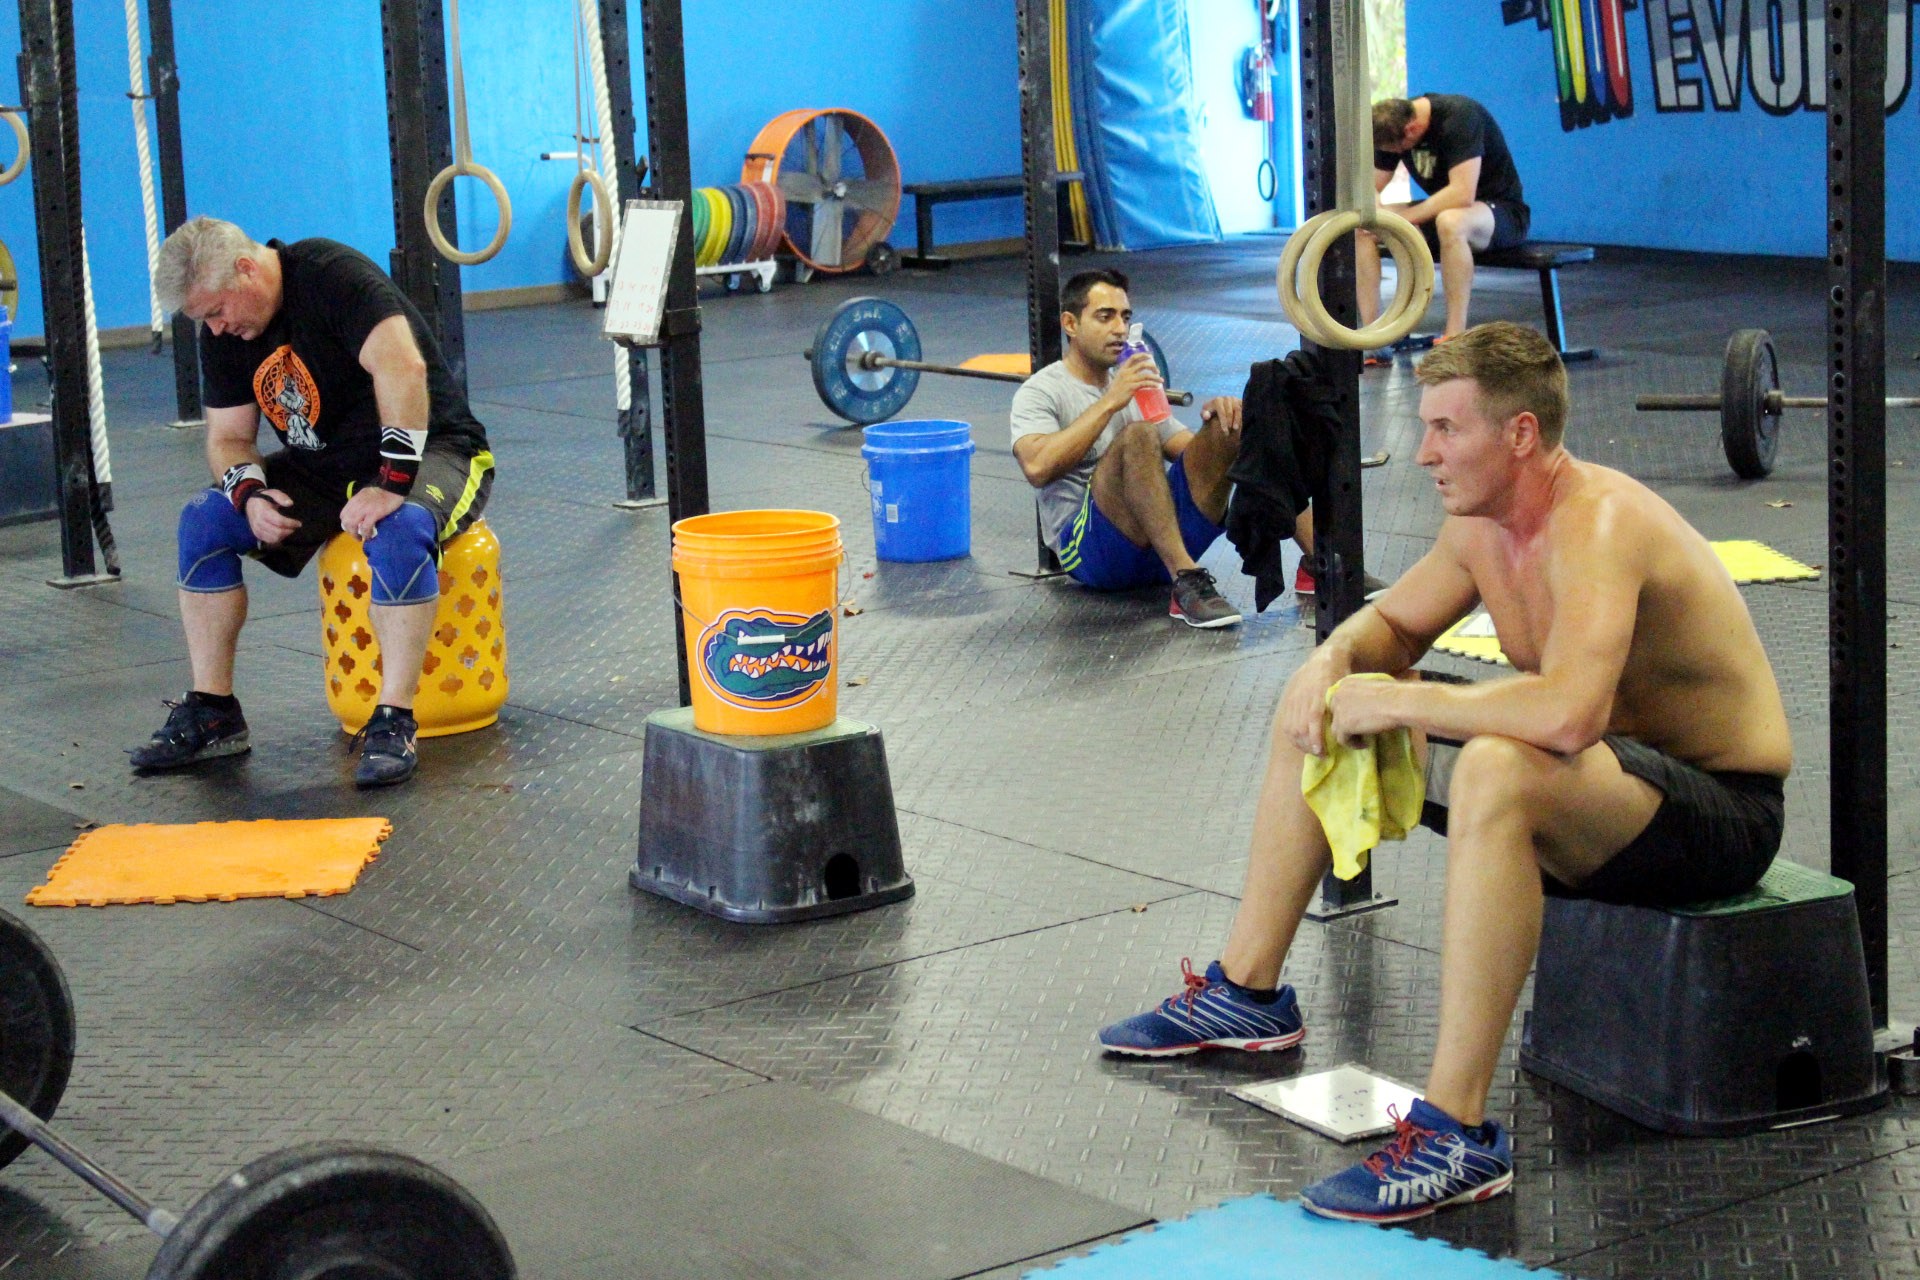 Spacing out during the 1 minute rest in the workout.